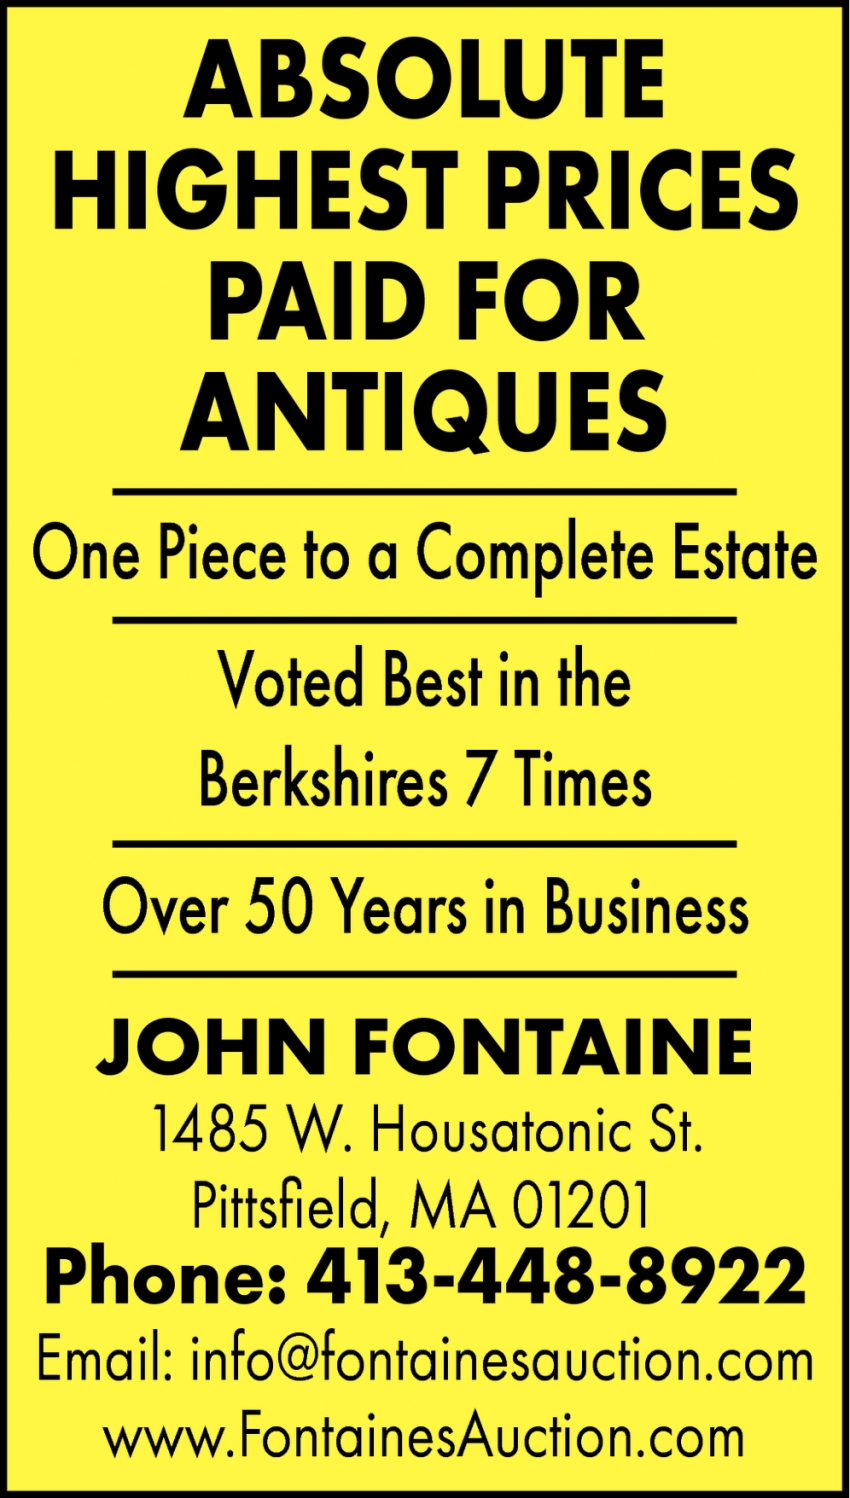 Absolute Highest Prices Paid for Antiques